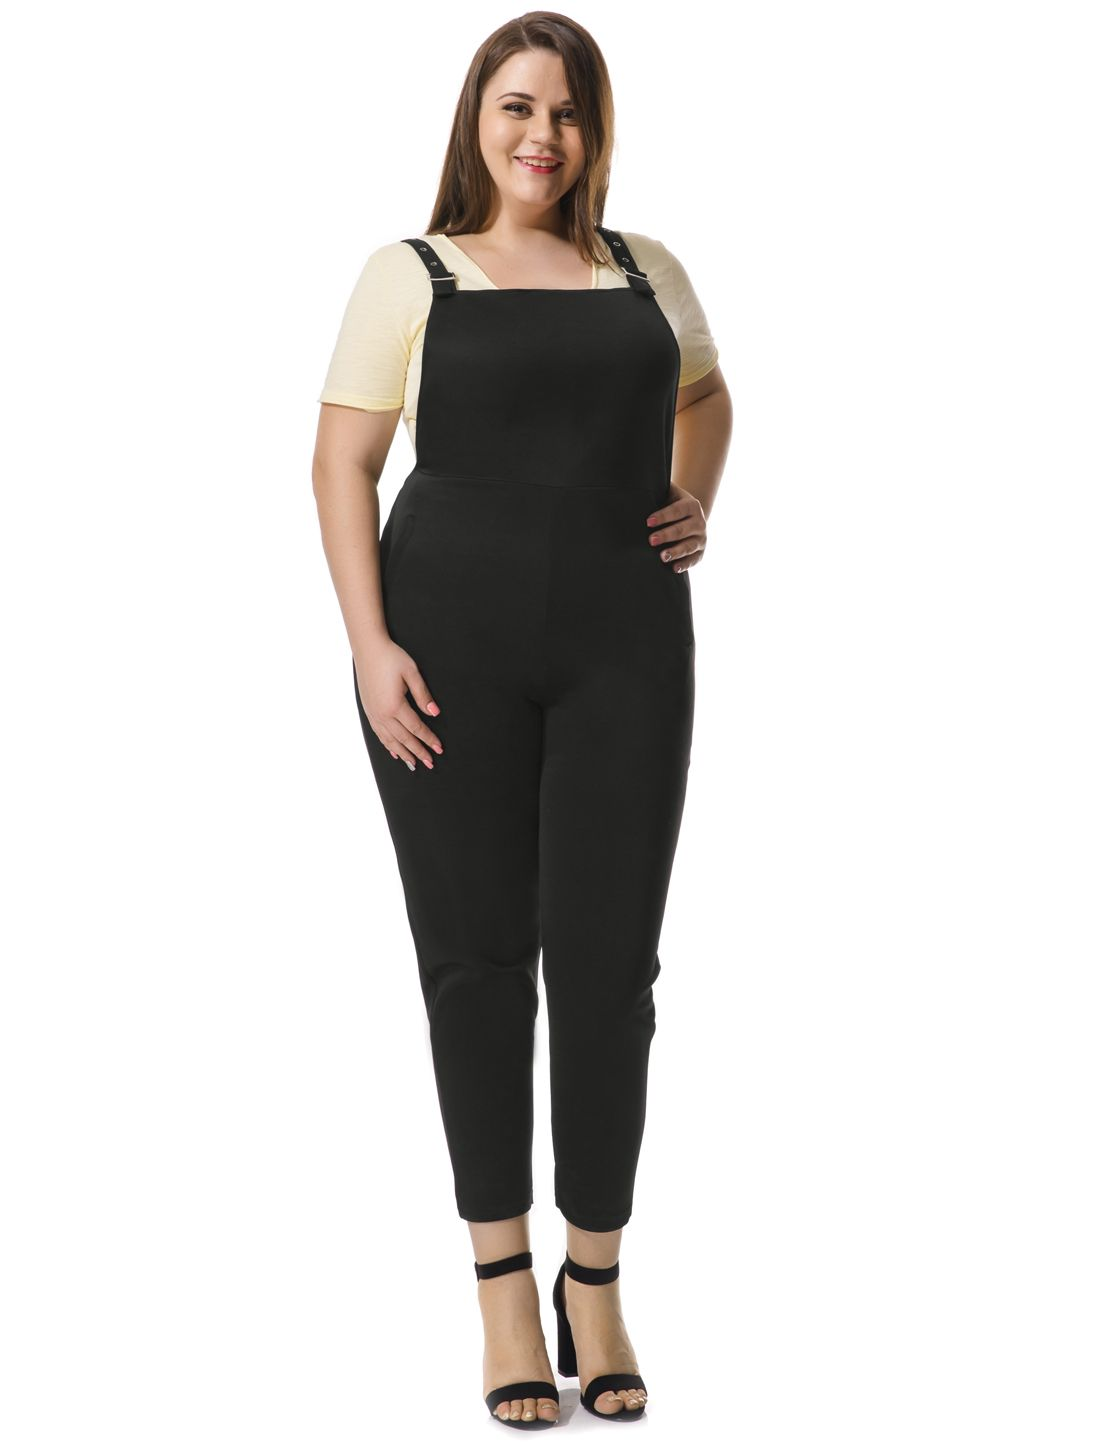 Women Plus Size Pinafore Overalls w Side Pockets - Pants